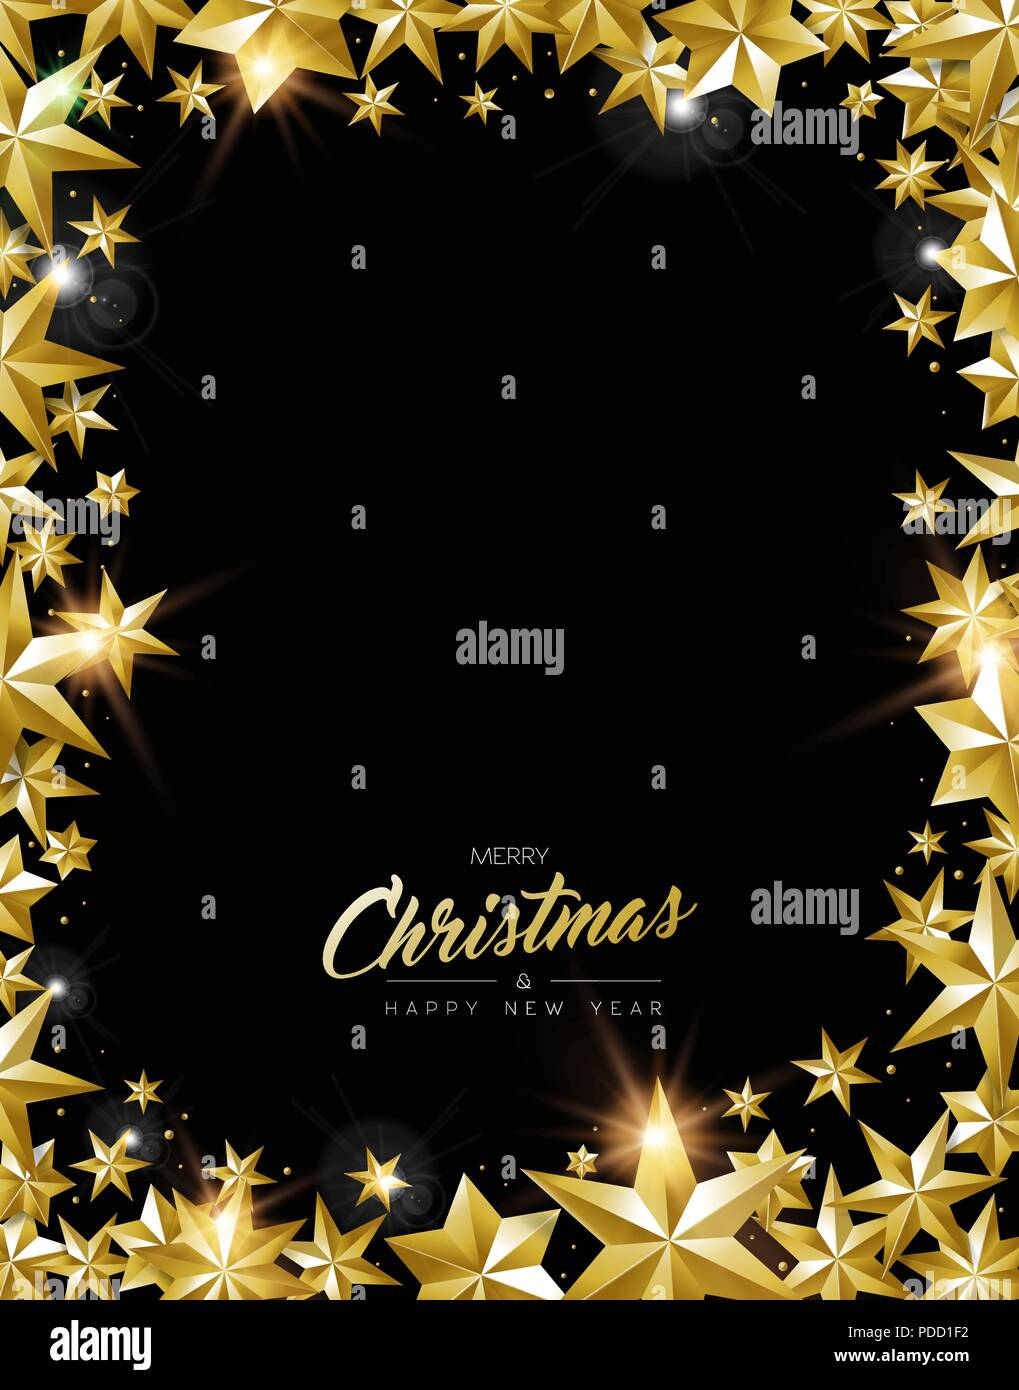 Merry Christmas New Year Greeting Card With Realistic Gold Stars